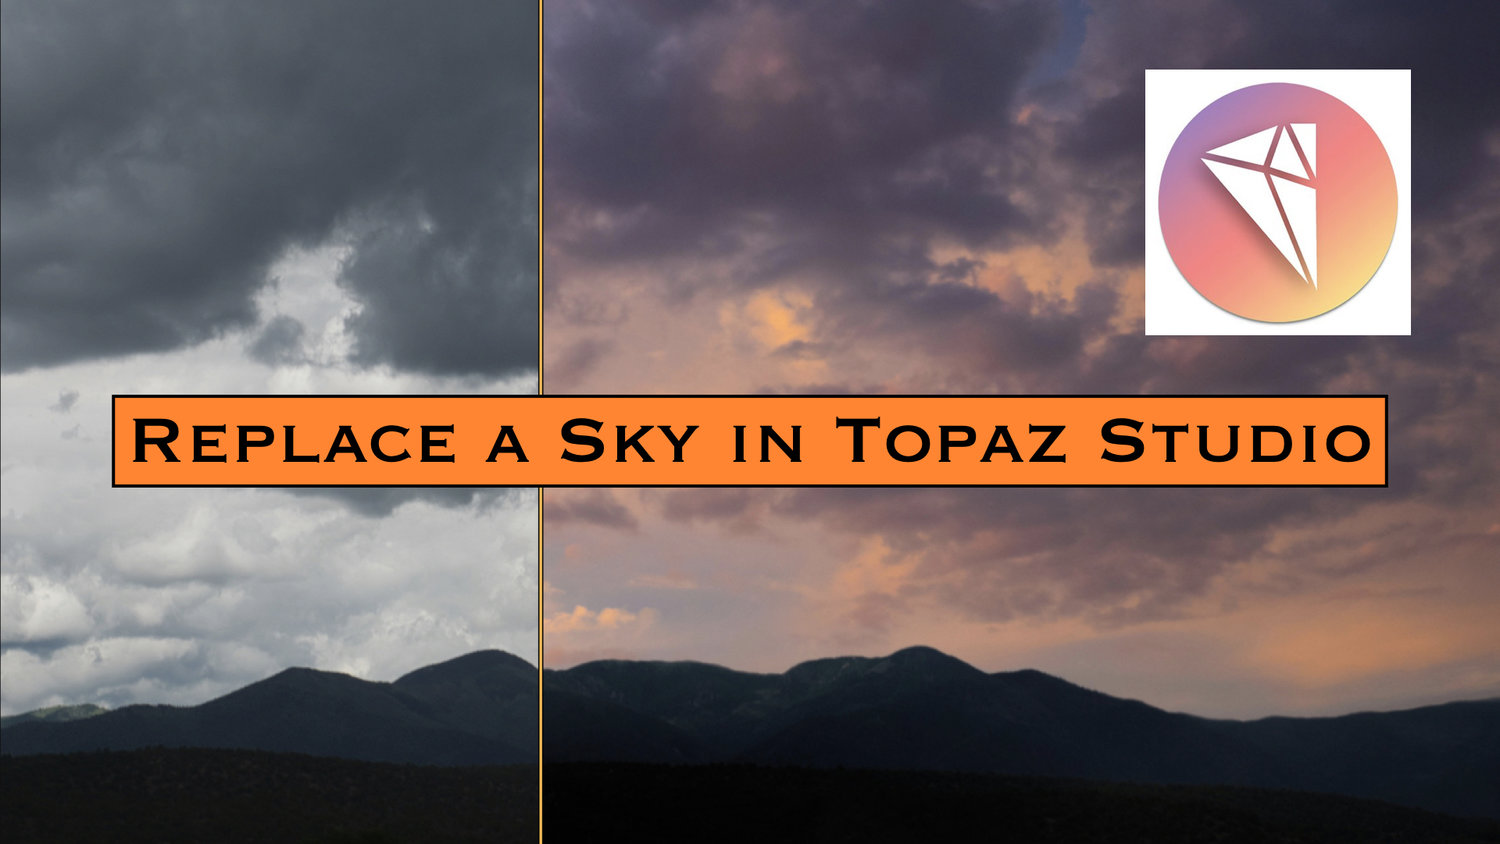 Replace a sky in Topaz Studio — Nomadic Pursuits - a blog by Jim Nix